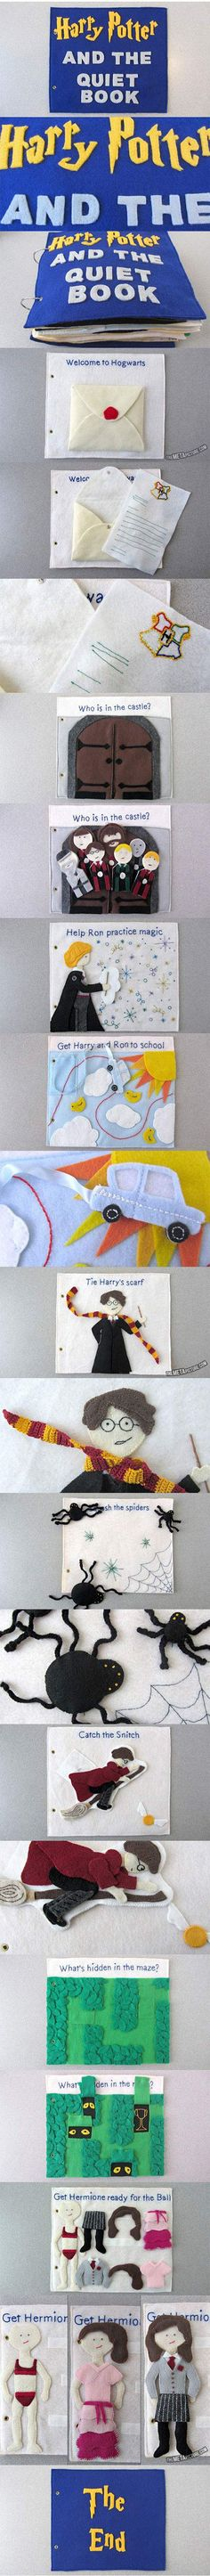 That Is Awesome: Moms, take note. Harry Potter rules